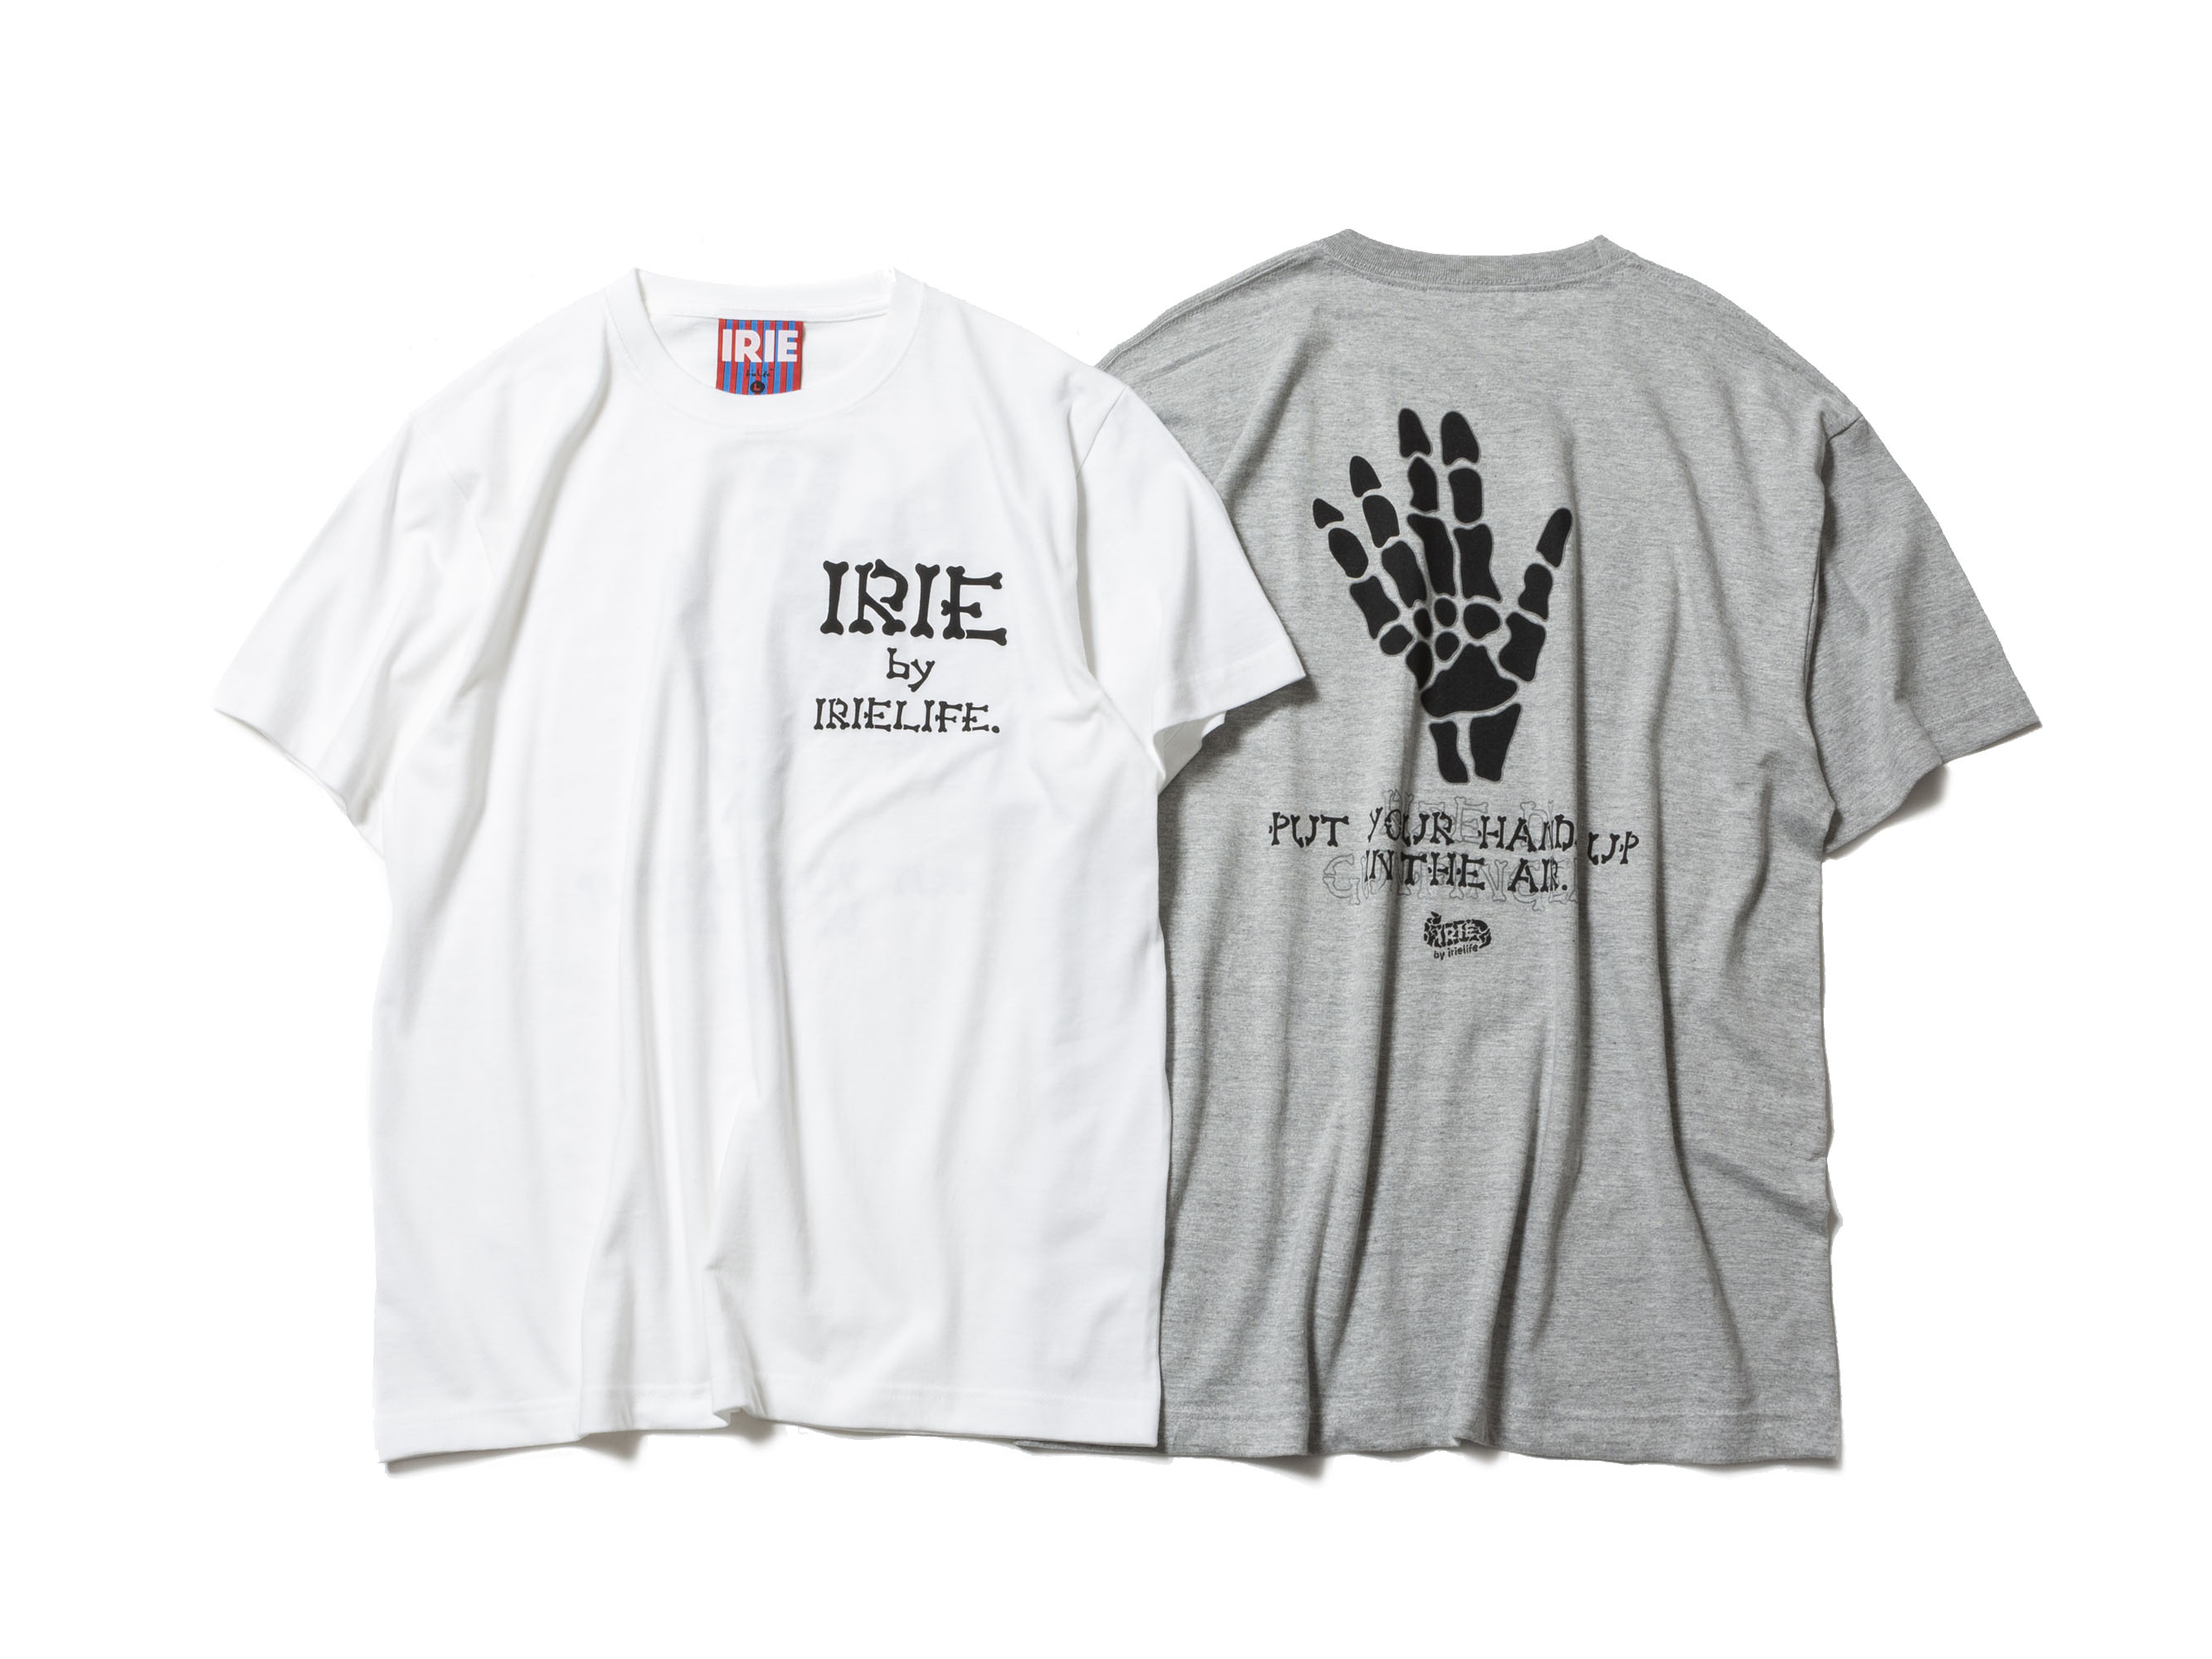 IRIE BONE TEE -IRIE by irielife-